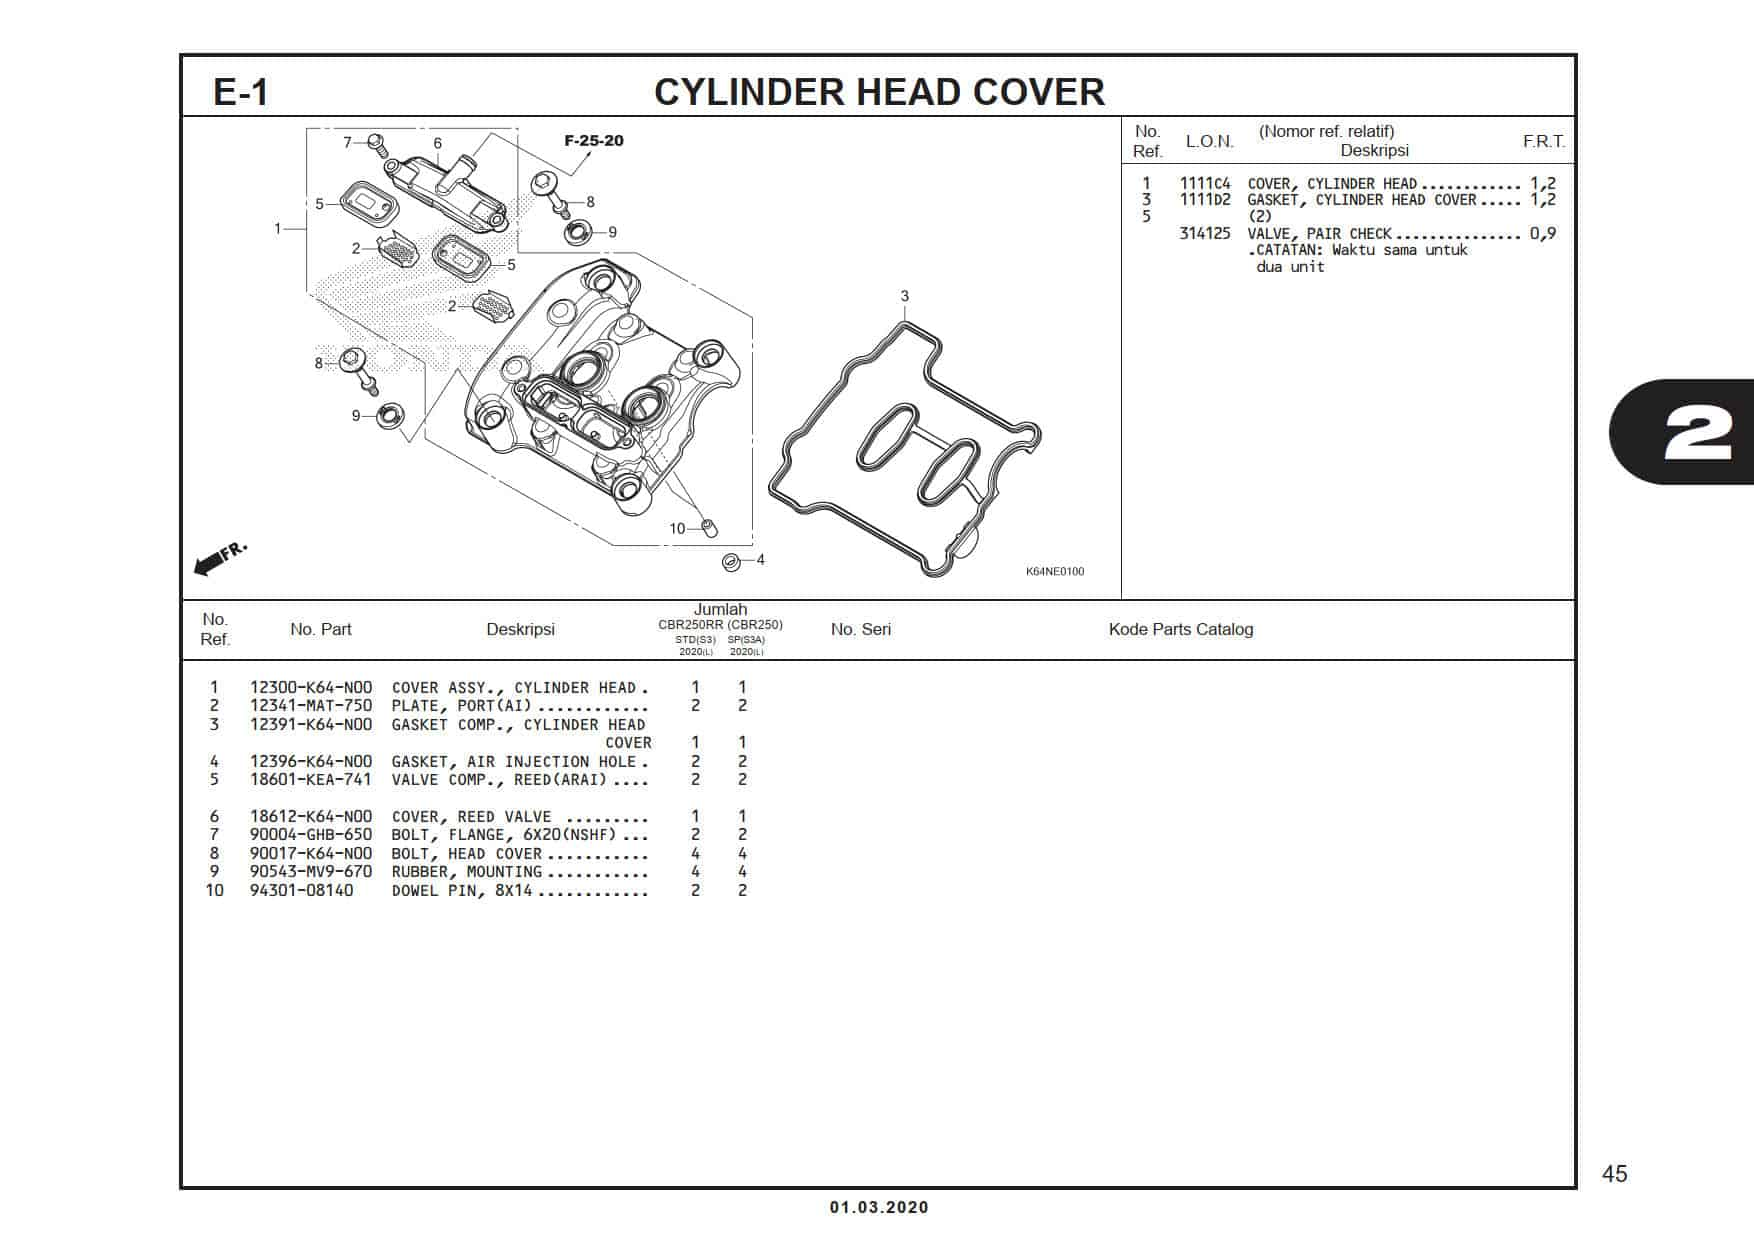 E-1 Cylinder Head Cover